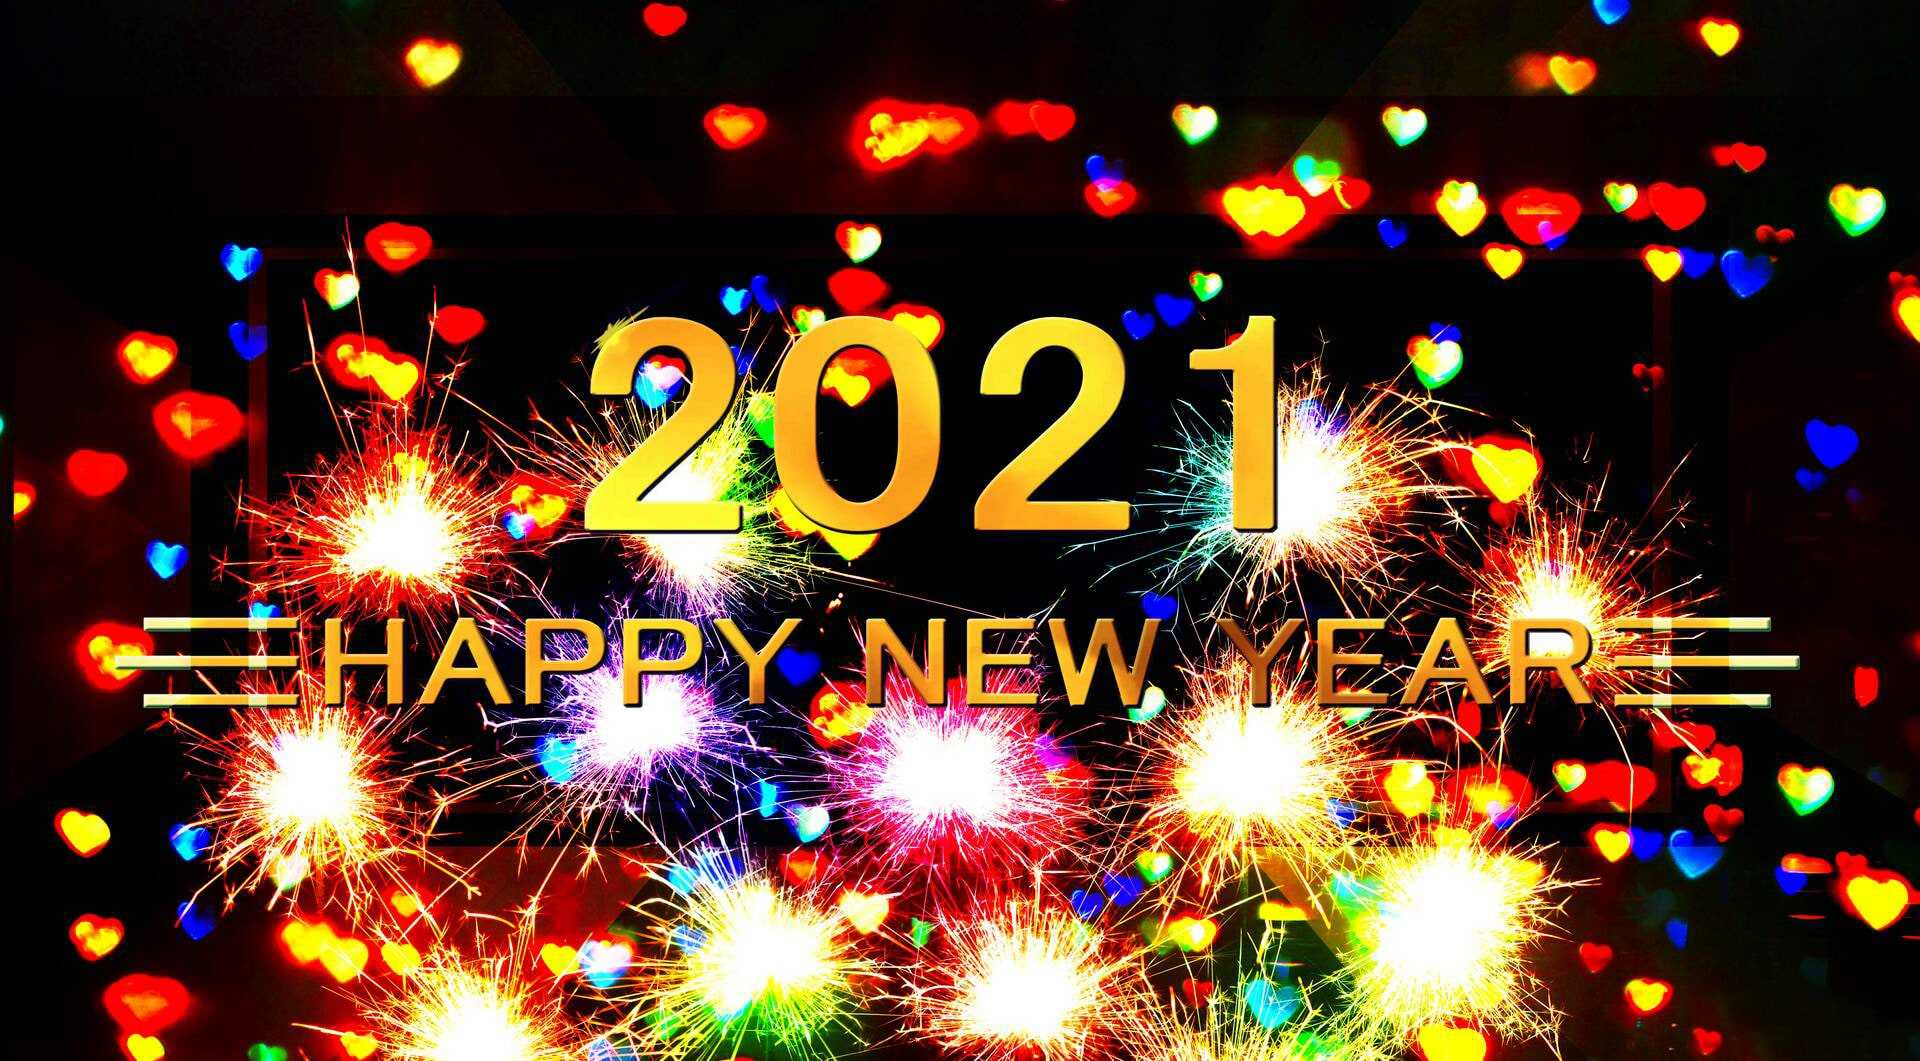 Happy New Year 2021 Wallpaper Kolpaper Awesome Free Hd Wallpapers